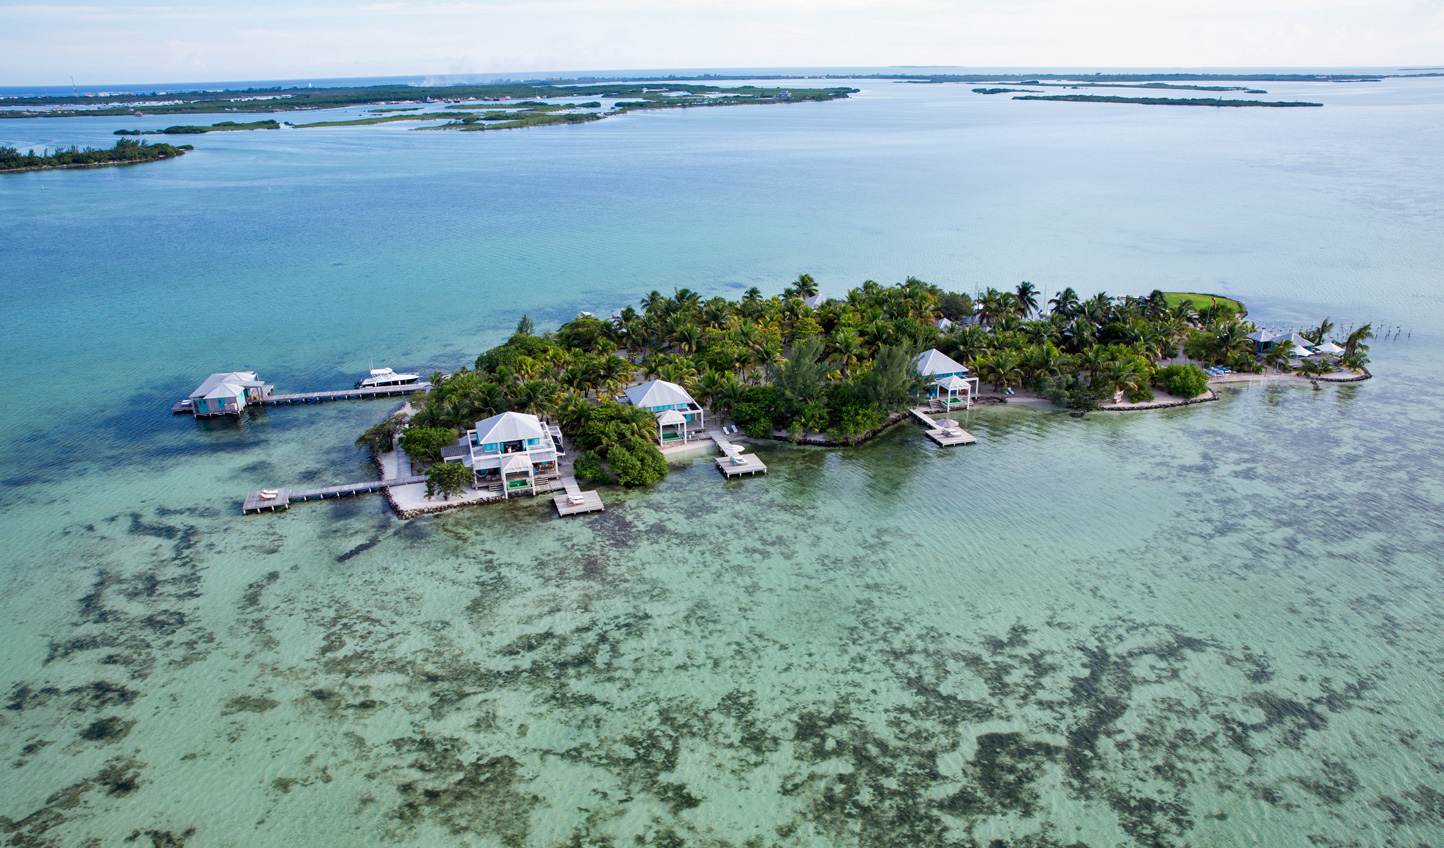 Nestled in the West Caribbean waters, Cayo Espanto is your island hideaway